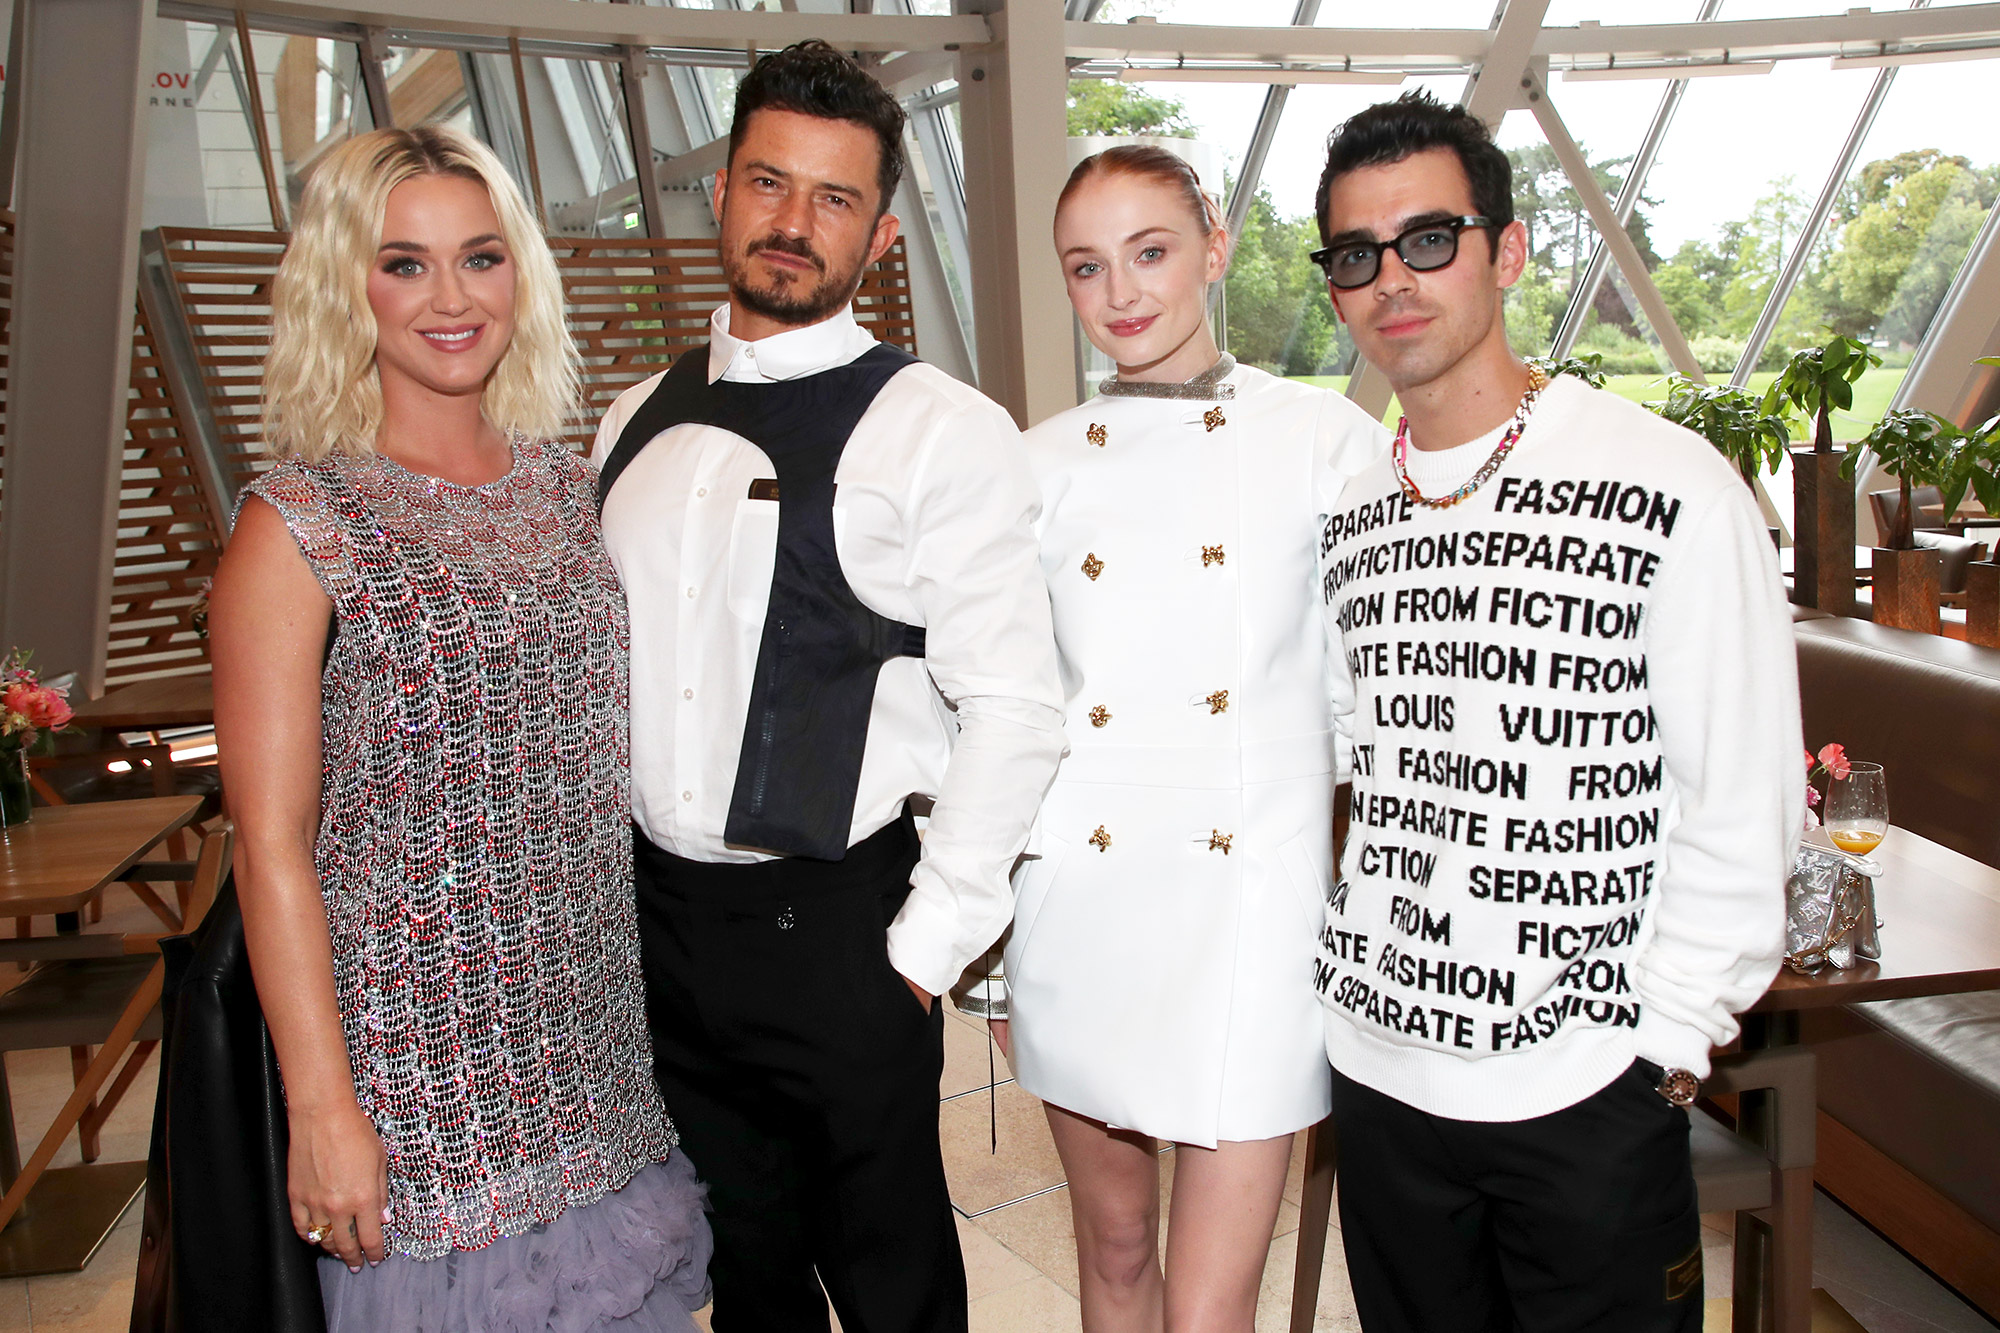 Katy Perry, Orlando Bloom, Sophie Turner and Joe Jonas attend Louis Vuitton Parfum hosts dinner at Fondation Louis Vuitton on July 05, 2021 in Paris, France